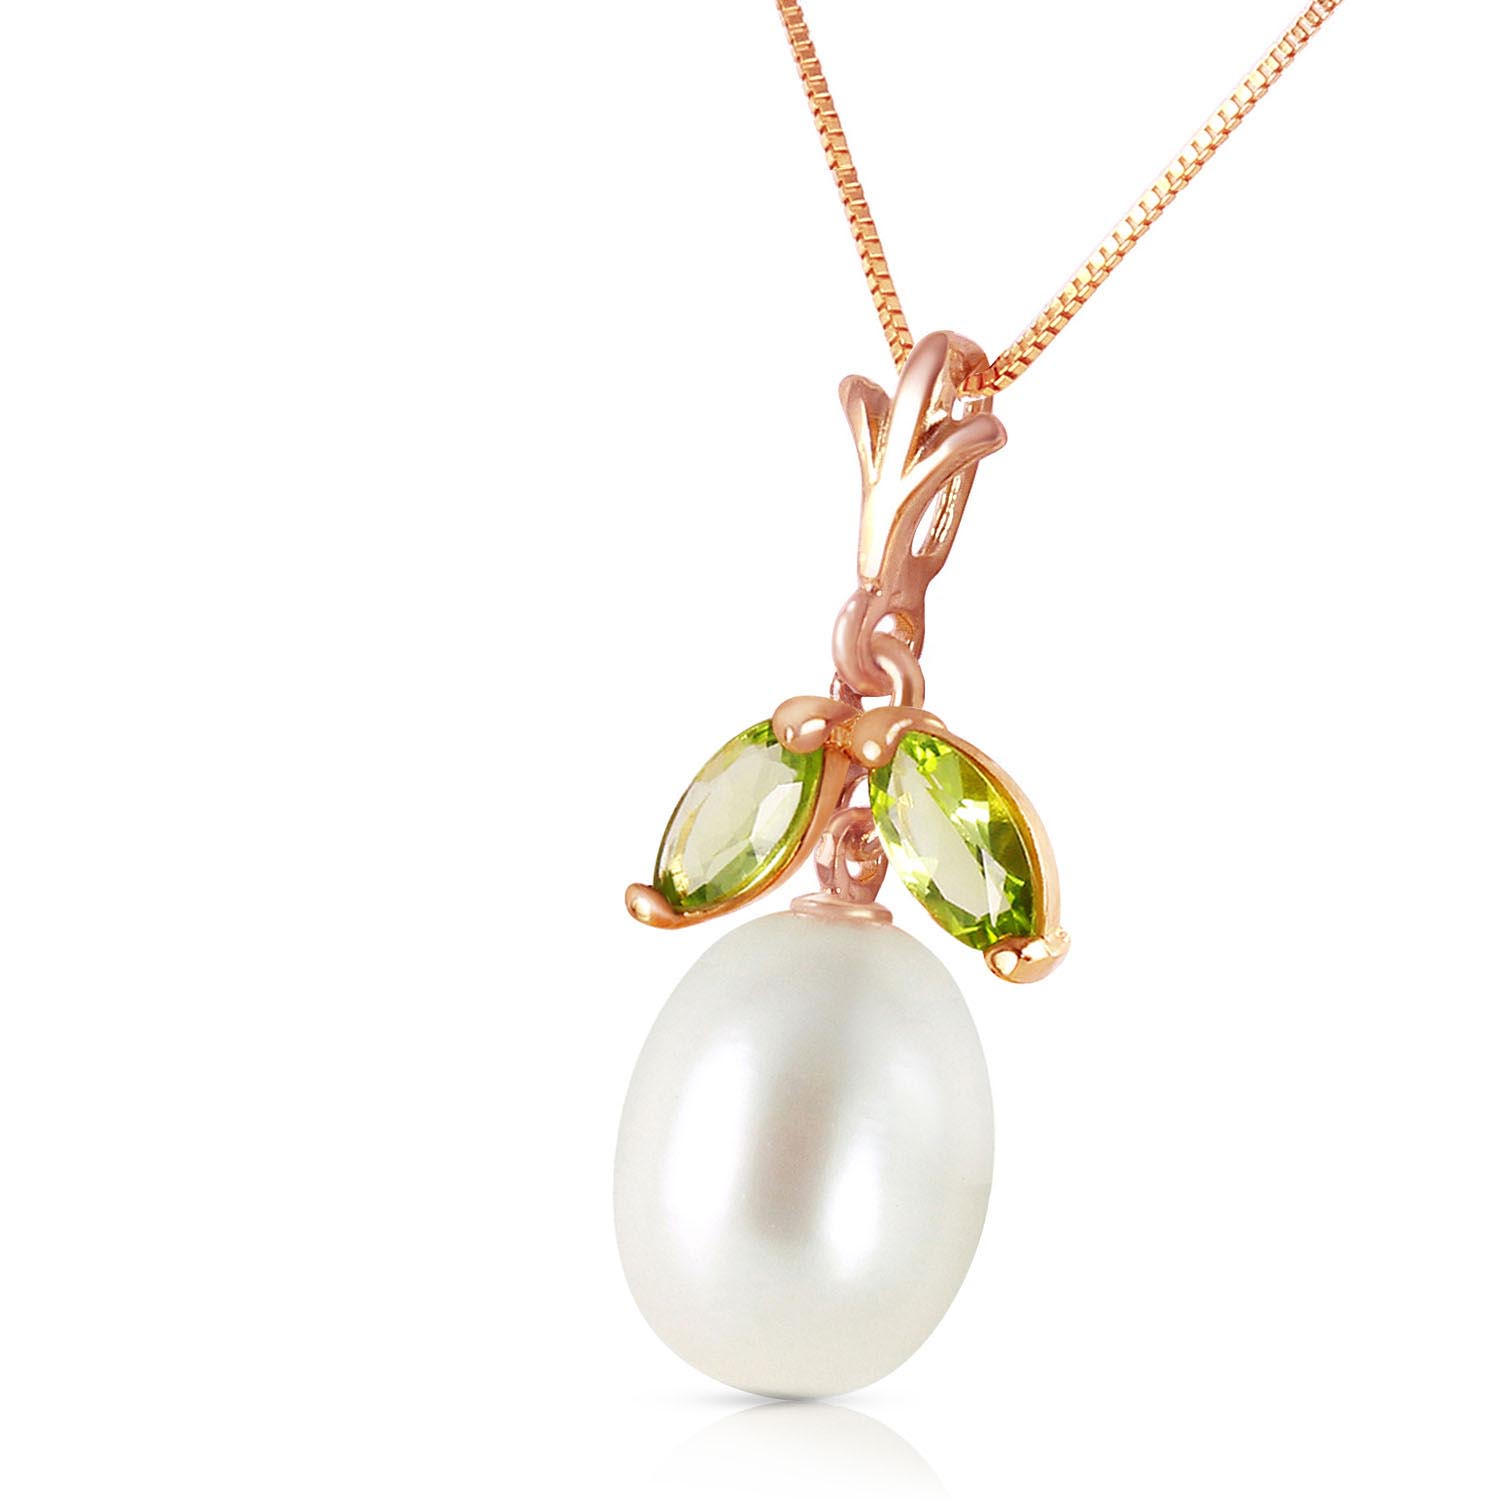 Pearl and Peridot Pendant Necklace 4.5ctw in 14K Rose Gold